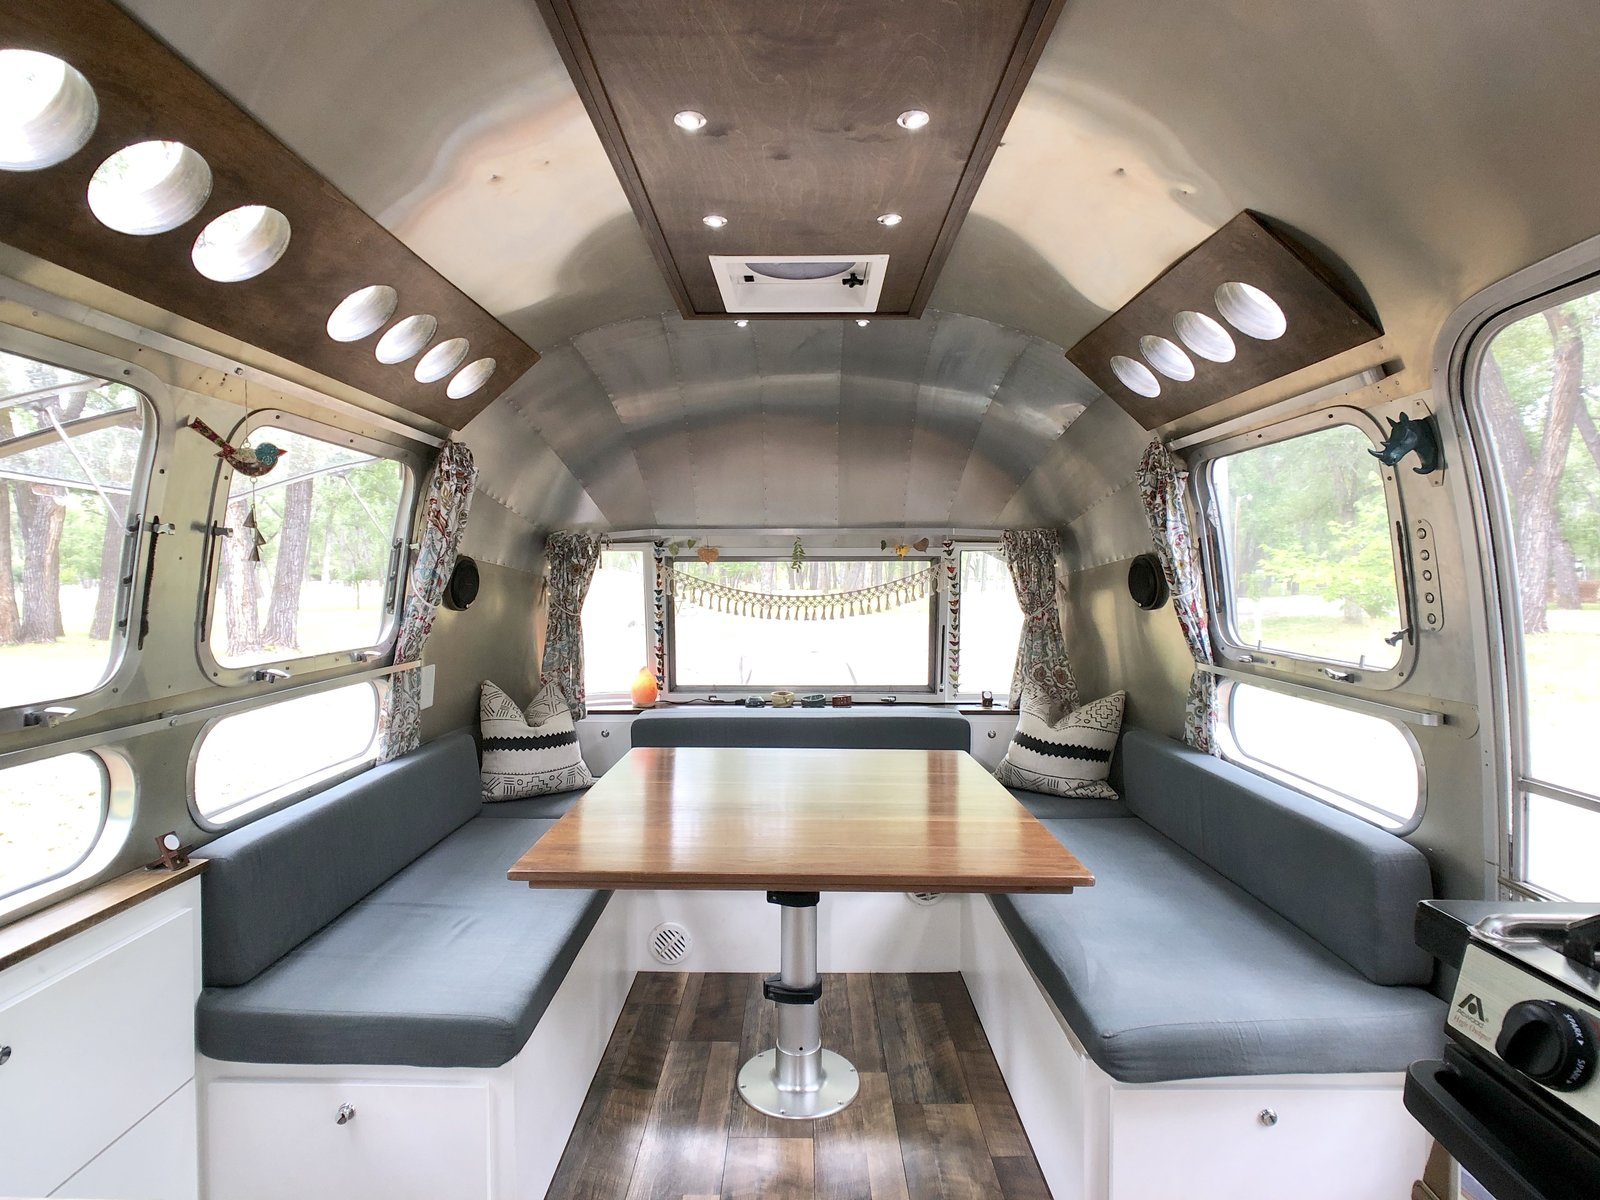 Dining Room, Table, Medium Hardwood Floor, and Bench A large dining space provides enough room for the family to comfortably dine, work, and play games. Curtains from their previous home have been repurposed for this new space.    Photo 8 of 12 in A 1970s Airstream Is Revamped Into an Off-Grid Home For Six from 1972 Vintage Airstream Trailer